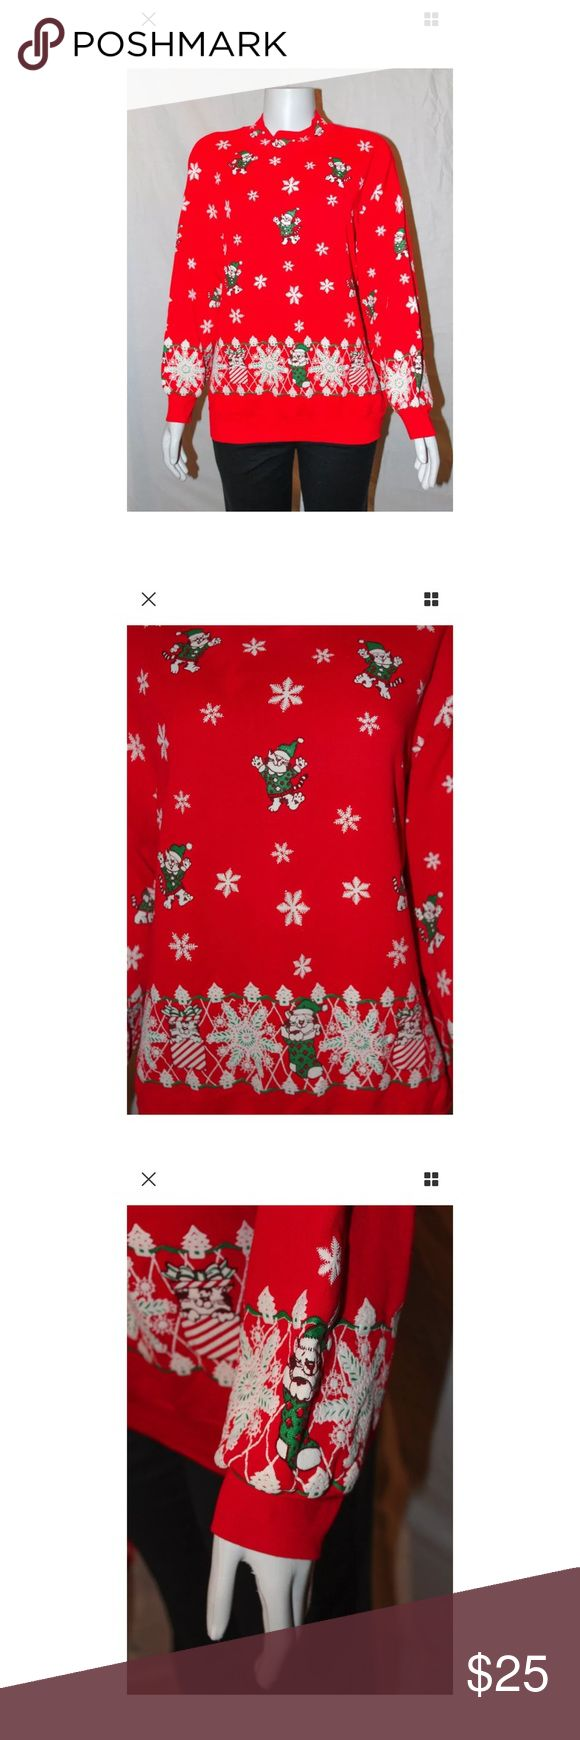 Red Cats Ugly Christmas Sweater ***All best reasonable offers accepted!***Black pants in photographs are for display purposes only and are not included in the sale.  Details: This sweater is perfect for cat lovers, holiday lovers, for the office holiday party, or the ugly sweater Christmas party.Materials and Care Instructions:UnknownMeasurementsLength: 26 Inches (Bottom of neck to bottom of shirt)Bust: 45 Inches (Across the torso armpit to armpit doubled) Sleeve: 27 Inches…